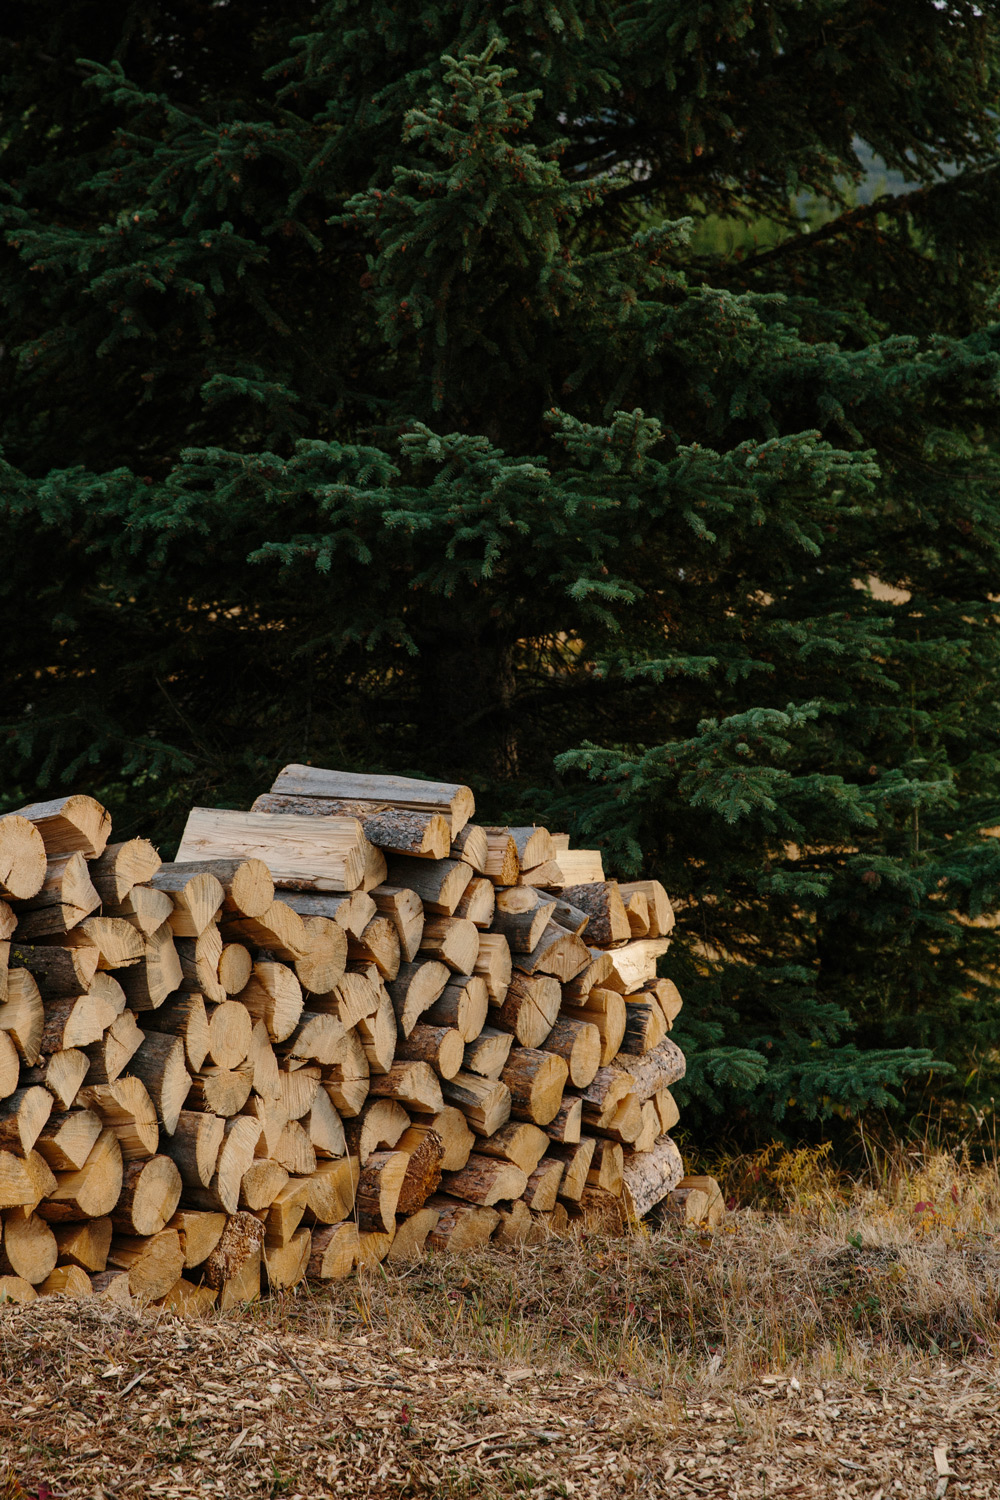 Stacked firewood for those nightly campfires and s'mores.